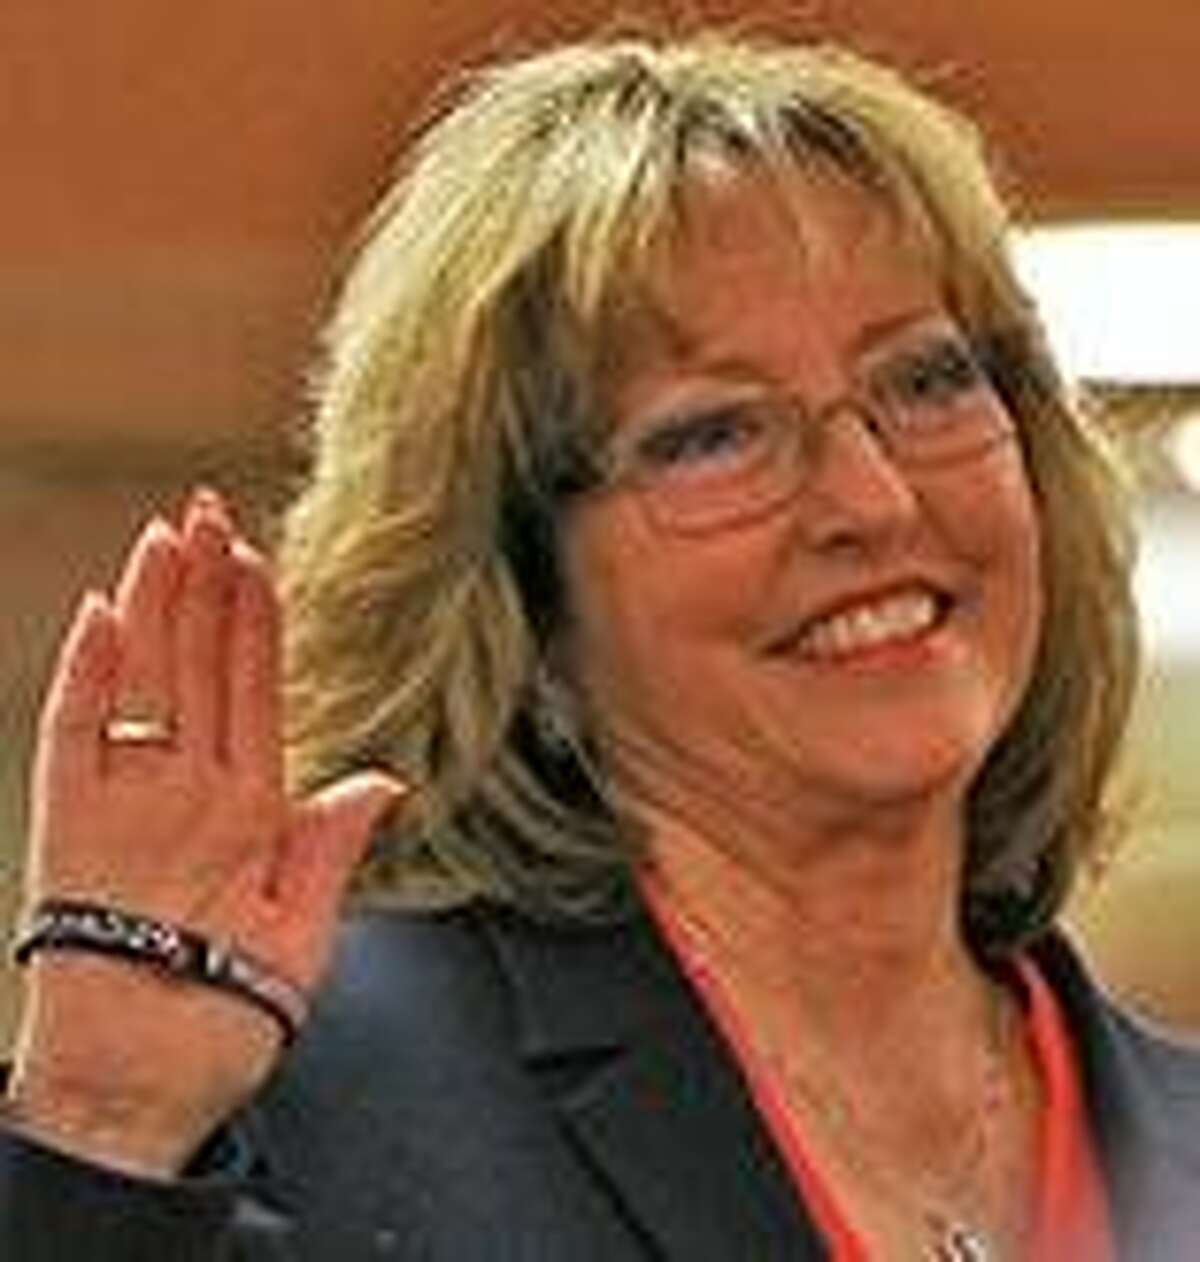 Lori Frugoli was elected district attorney of Marin County in 2018, after working 27 years in the office as a deputy district attorney.